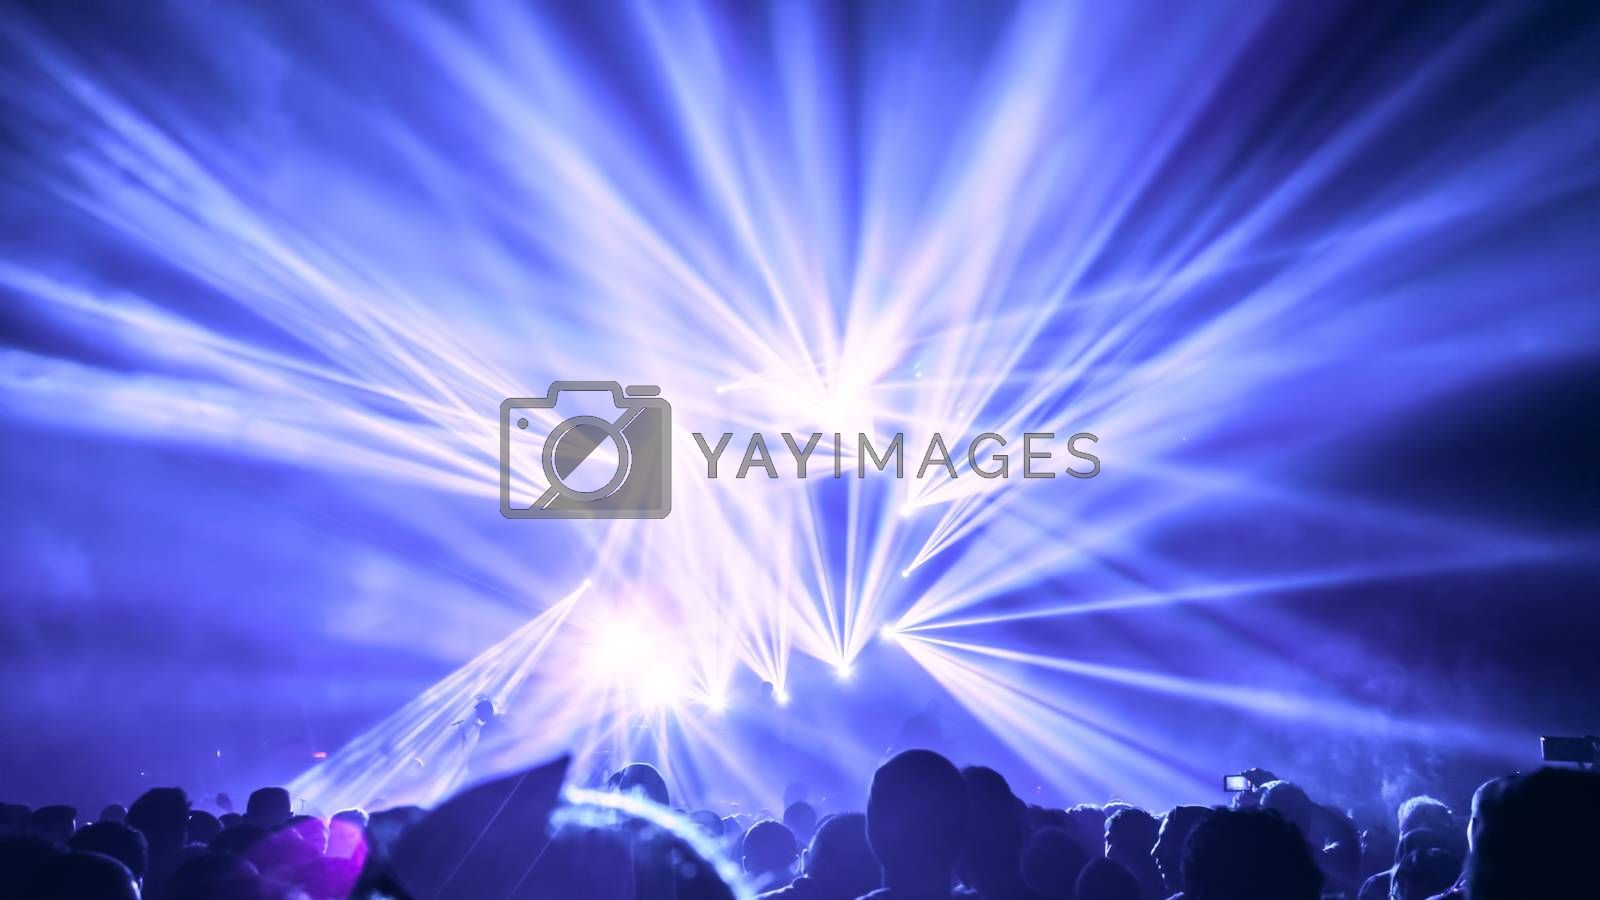 People on the party enjoying concert, dancing in the night club, celebrating new year eve, bright blue laser light background